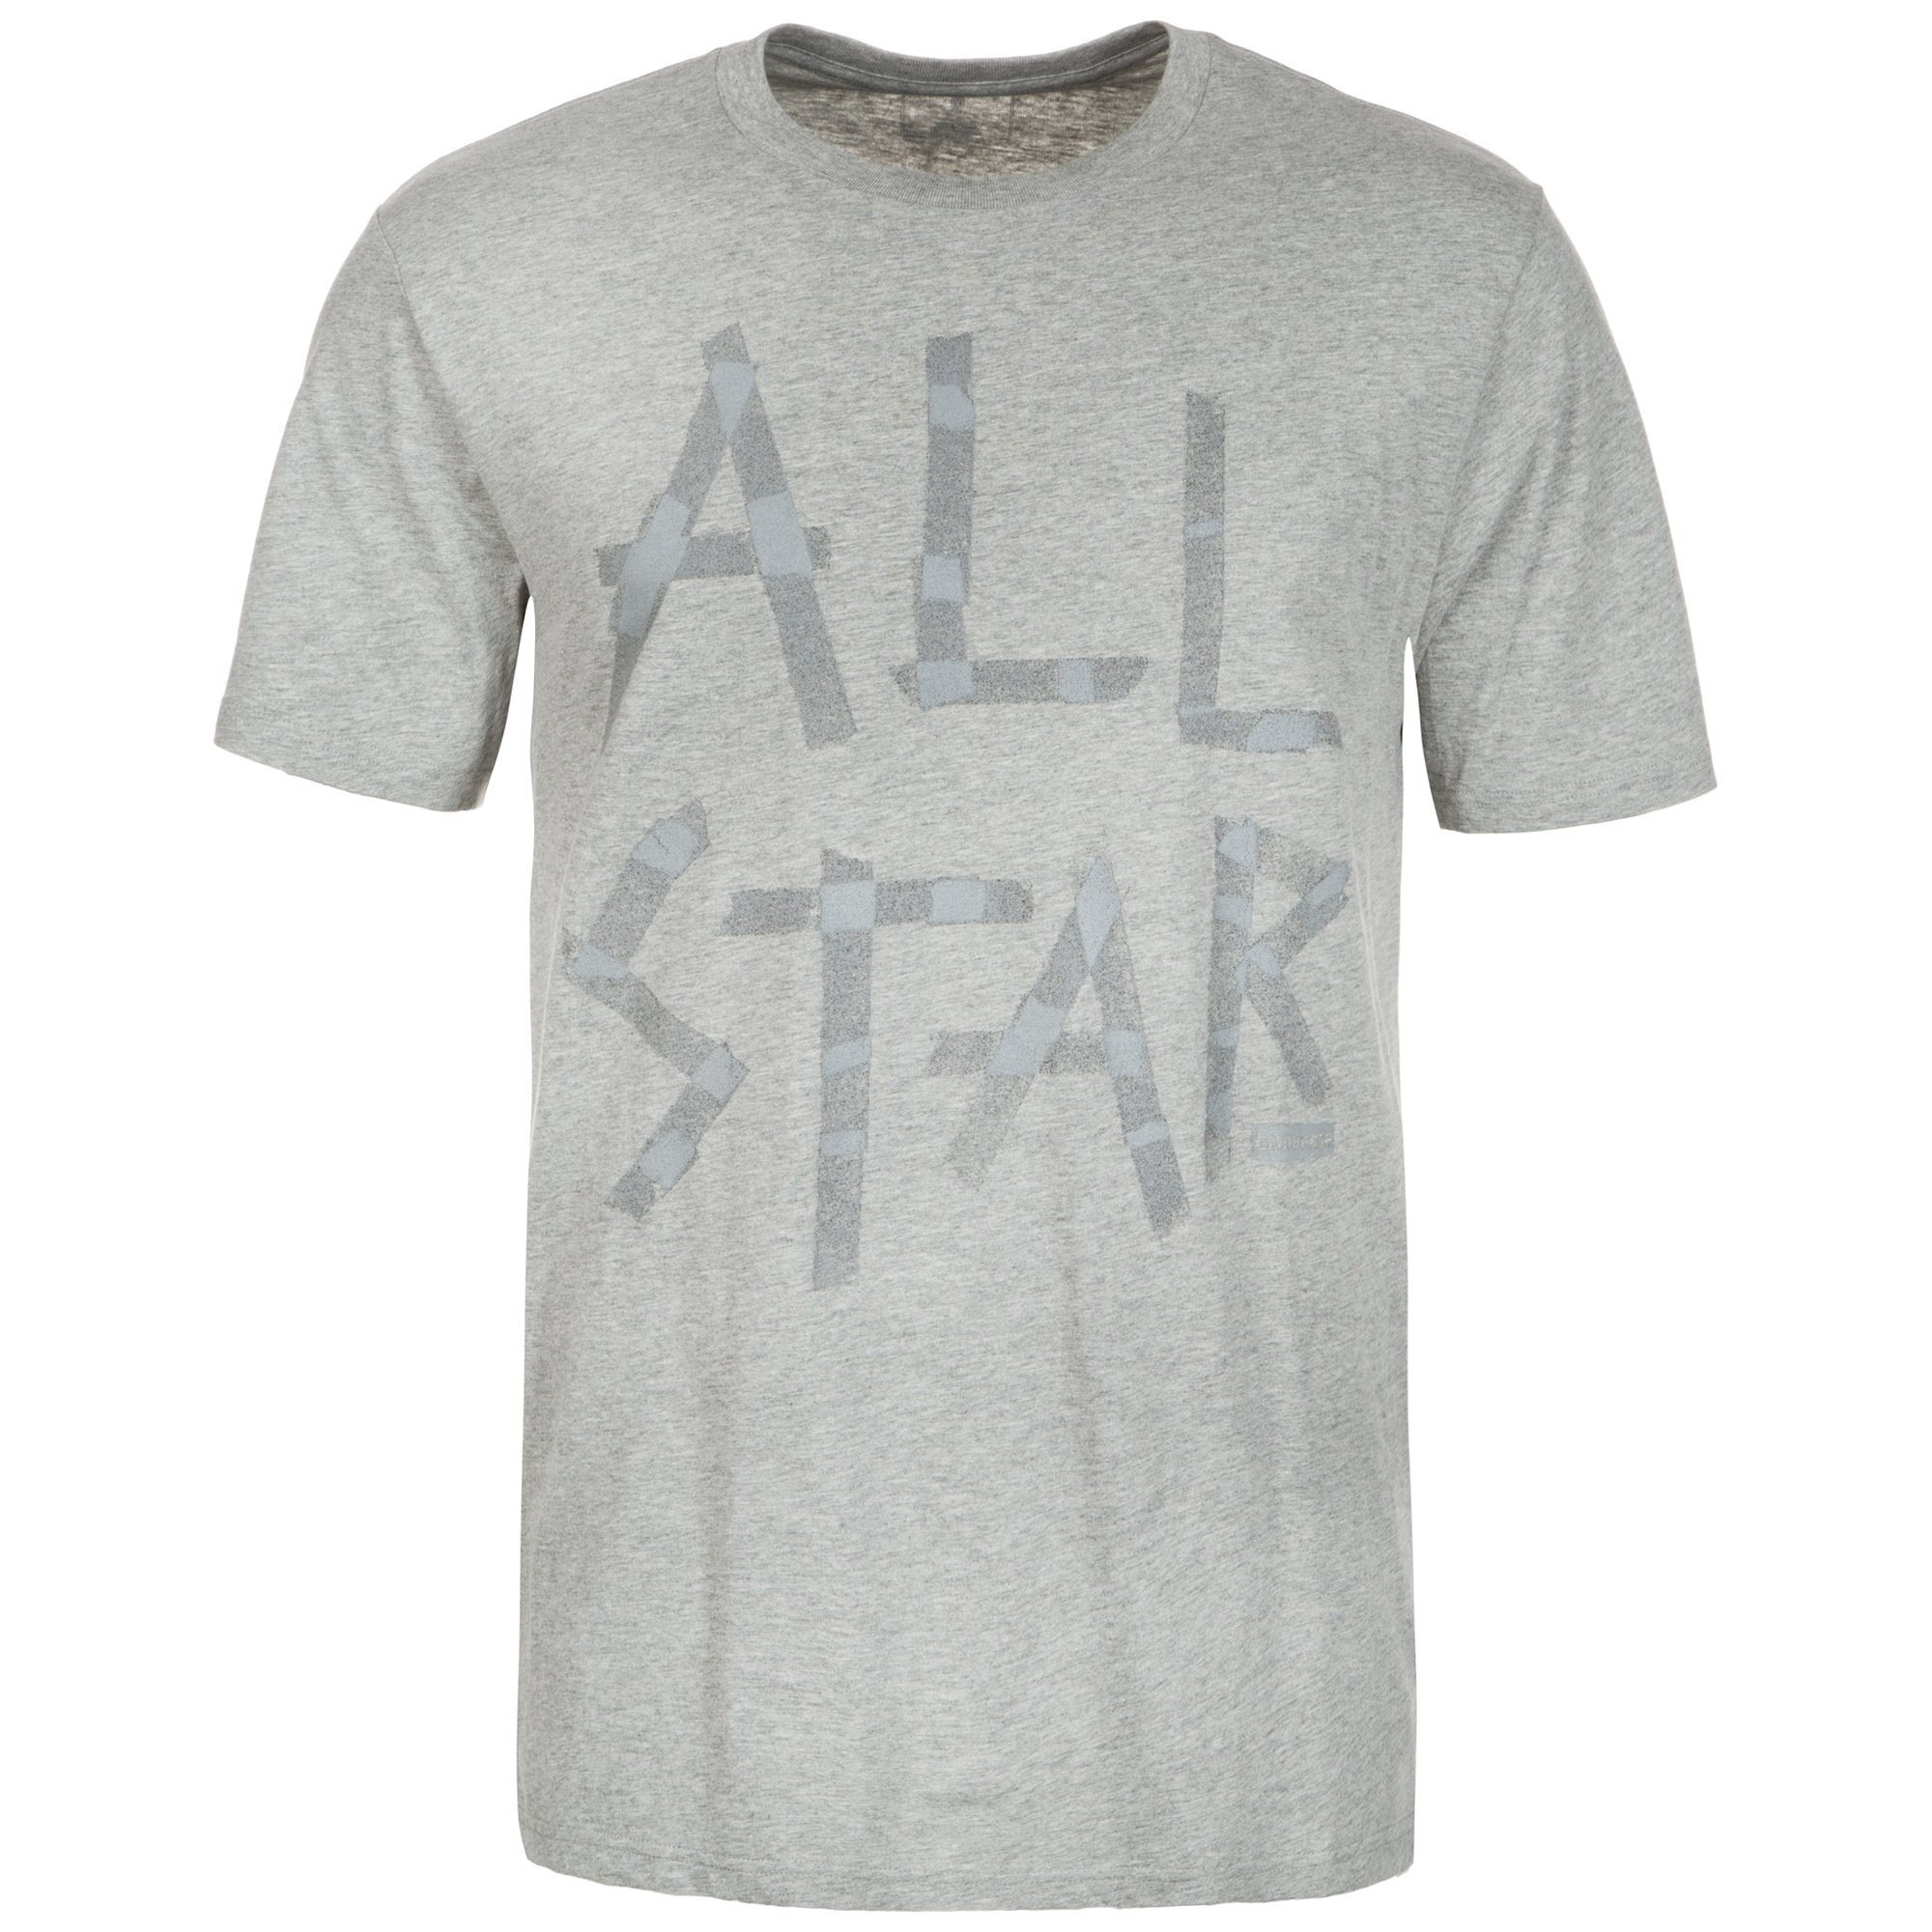 CONVERSE Reflective Tape All Star T-Shirt Herren